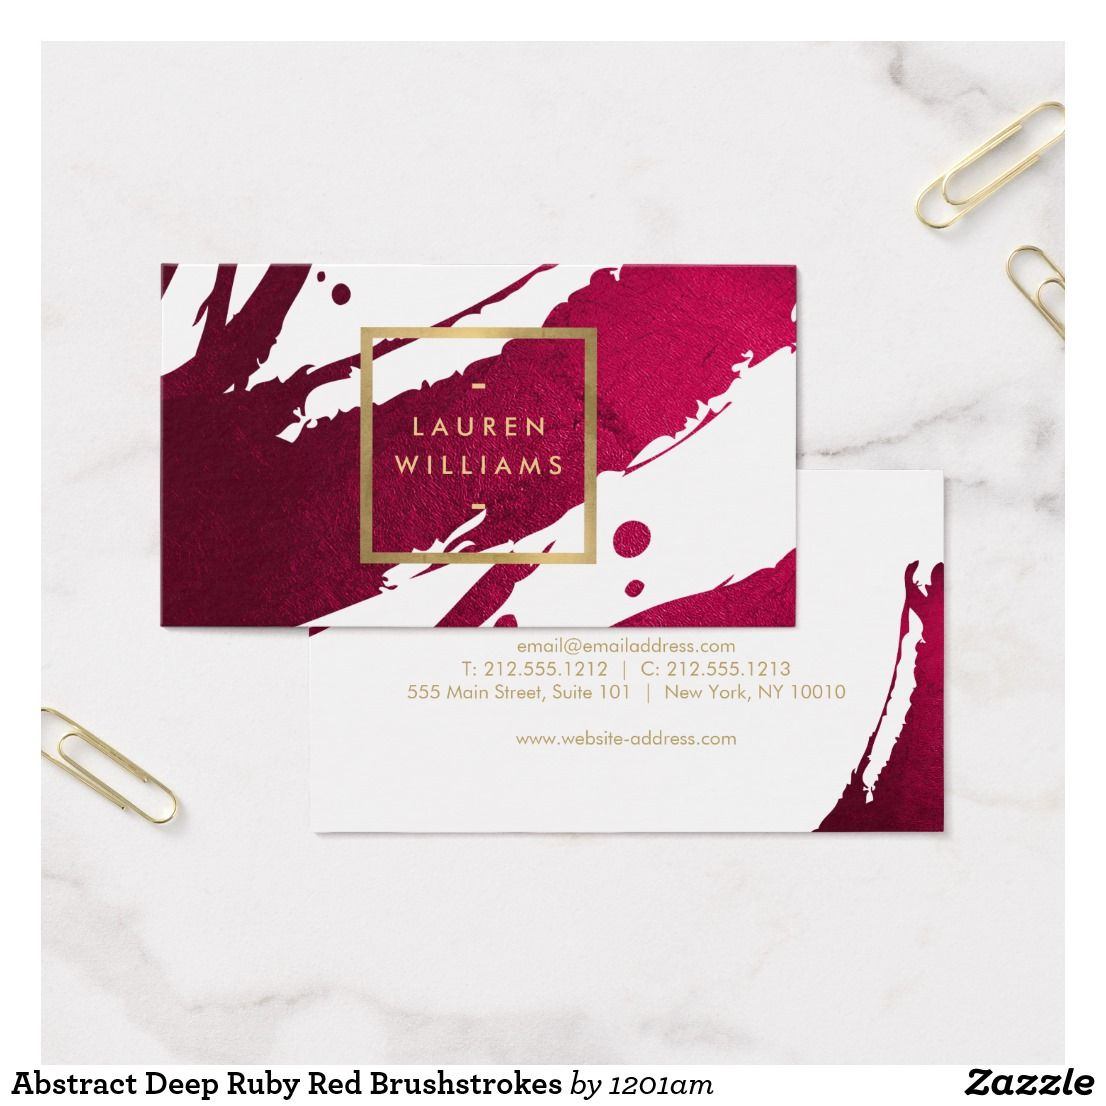 Abstract Deep Ruby Red Brushstrokes Business Card Ruby Red